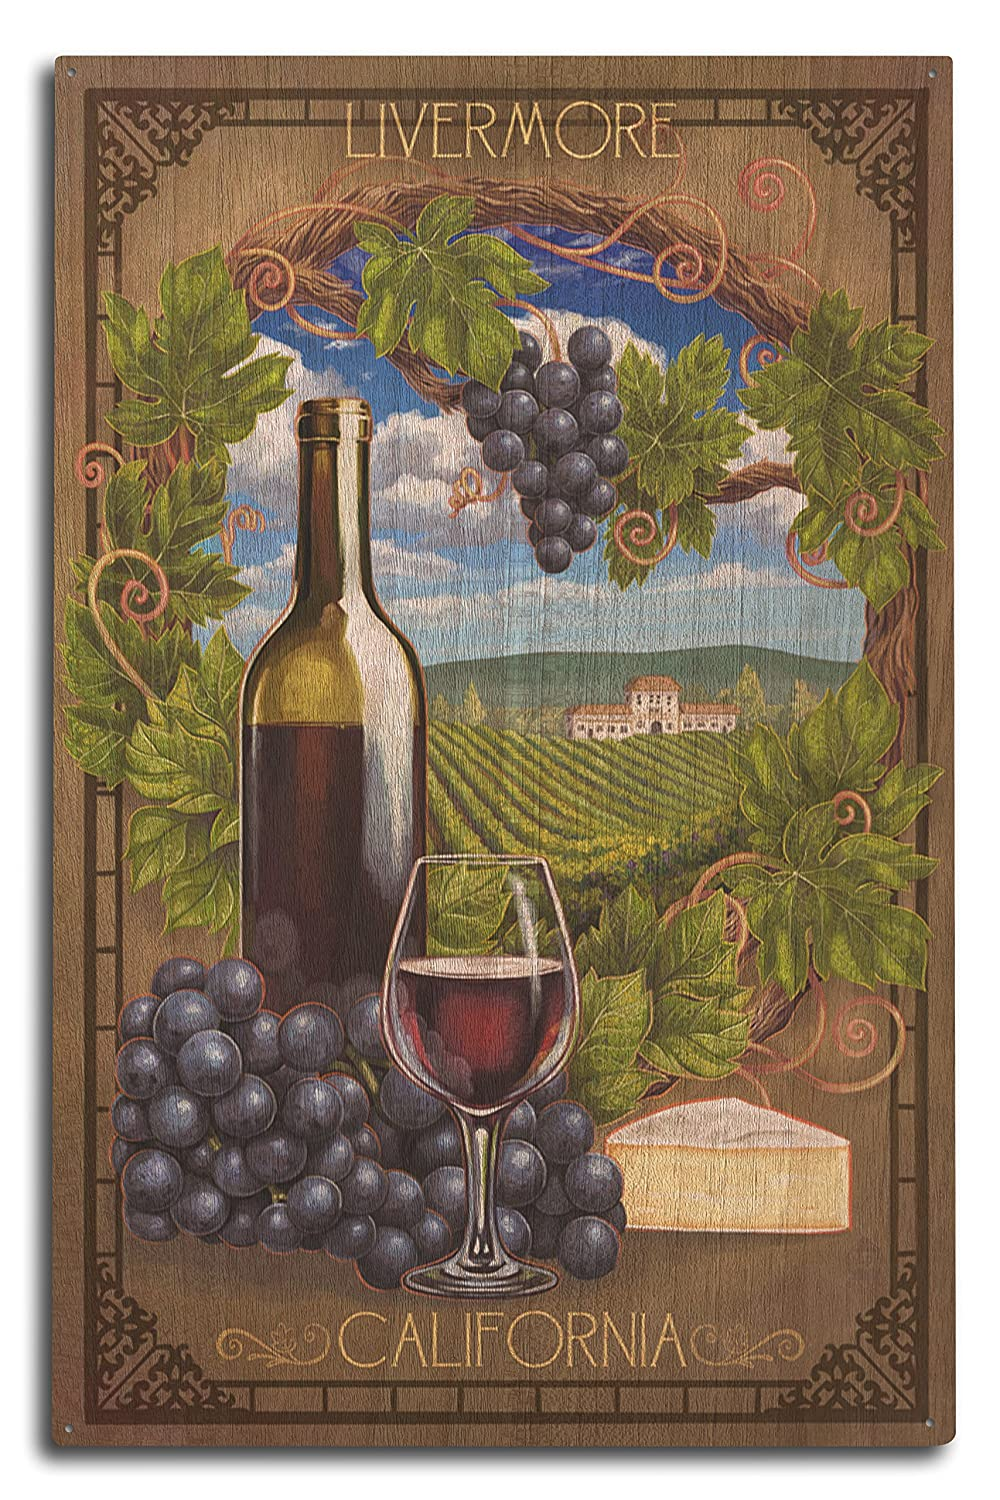 Livermore、カリフォルニア – Pinot Noir 10 x 15 Wood Sign LANT-50612-10x15W 10 x 15 Wood Sign  B07366VSLH